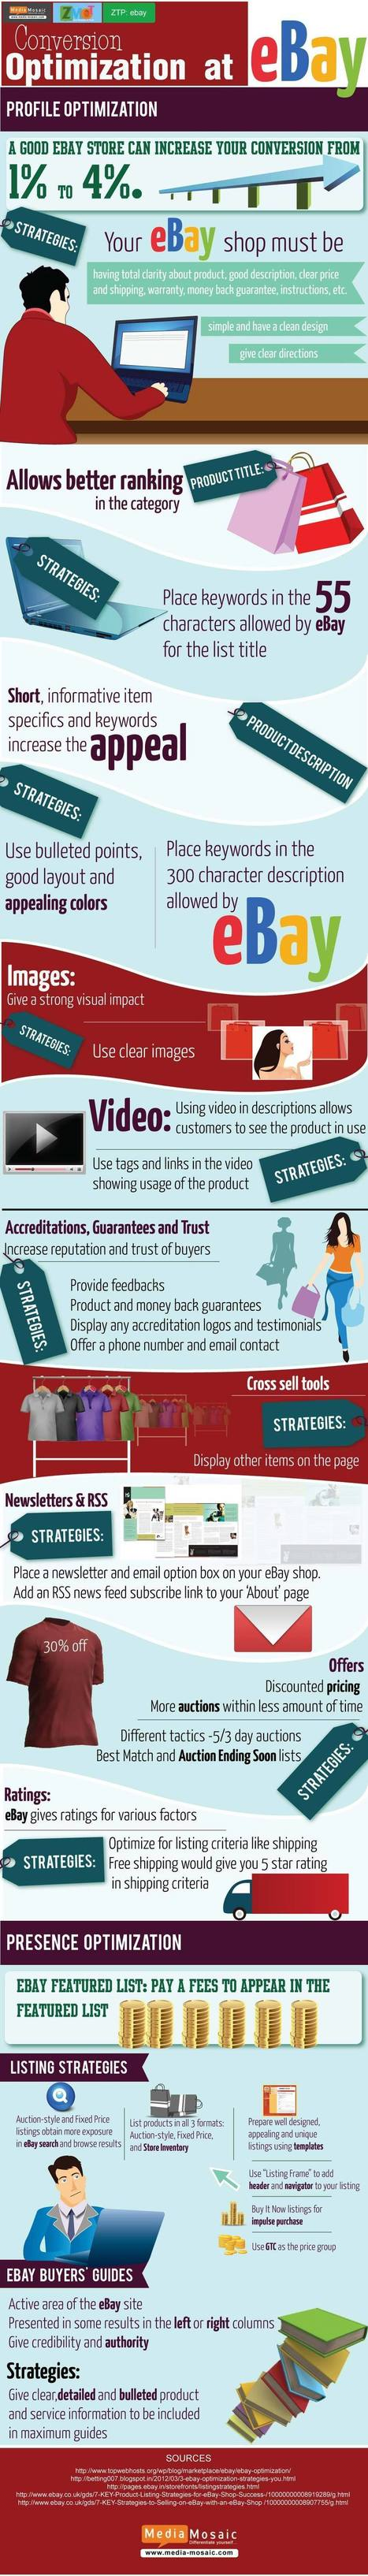 Ebay [Infographic]: Conversion Optimization at eBay | eBay business | Scoop.it